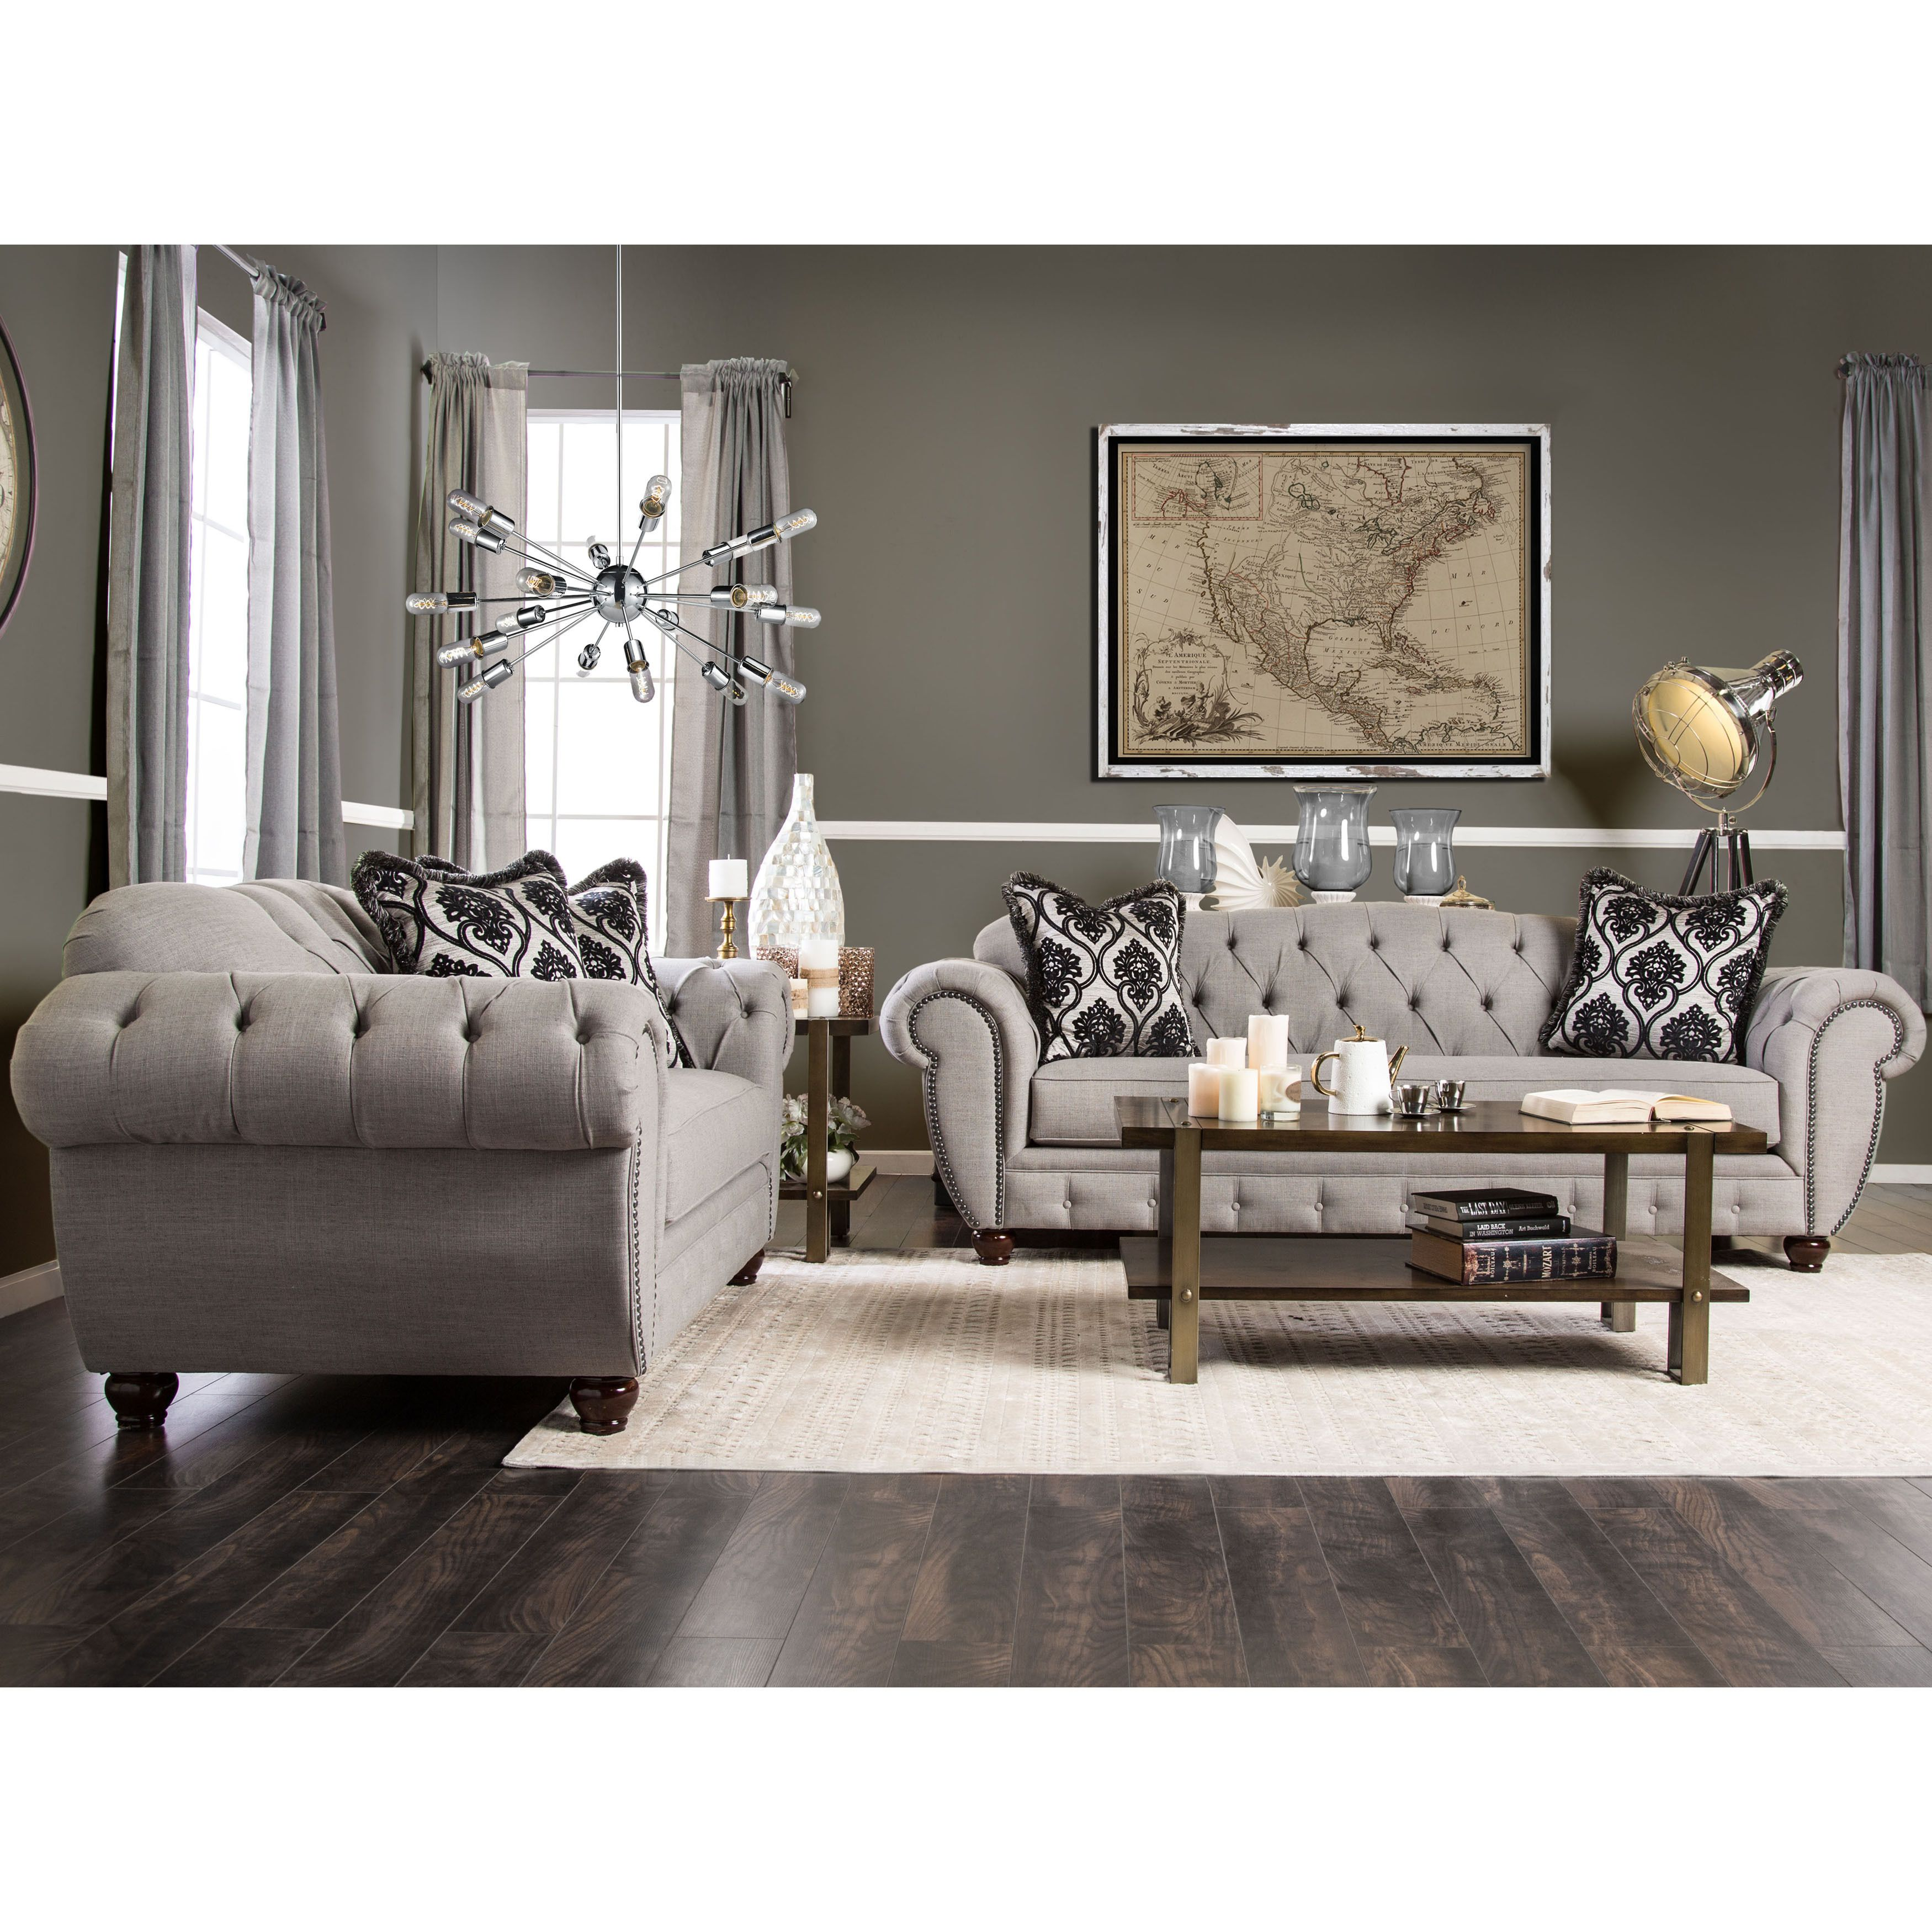 Furniture of America Augusta Victorian 2 piece Sofa Set